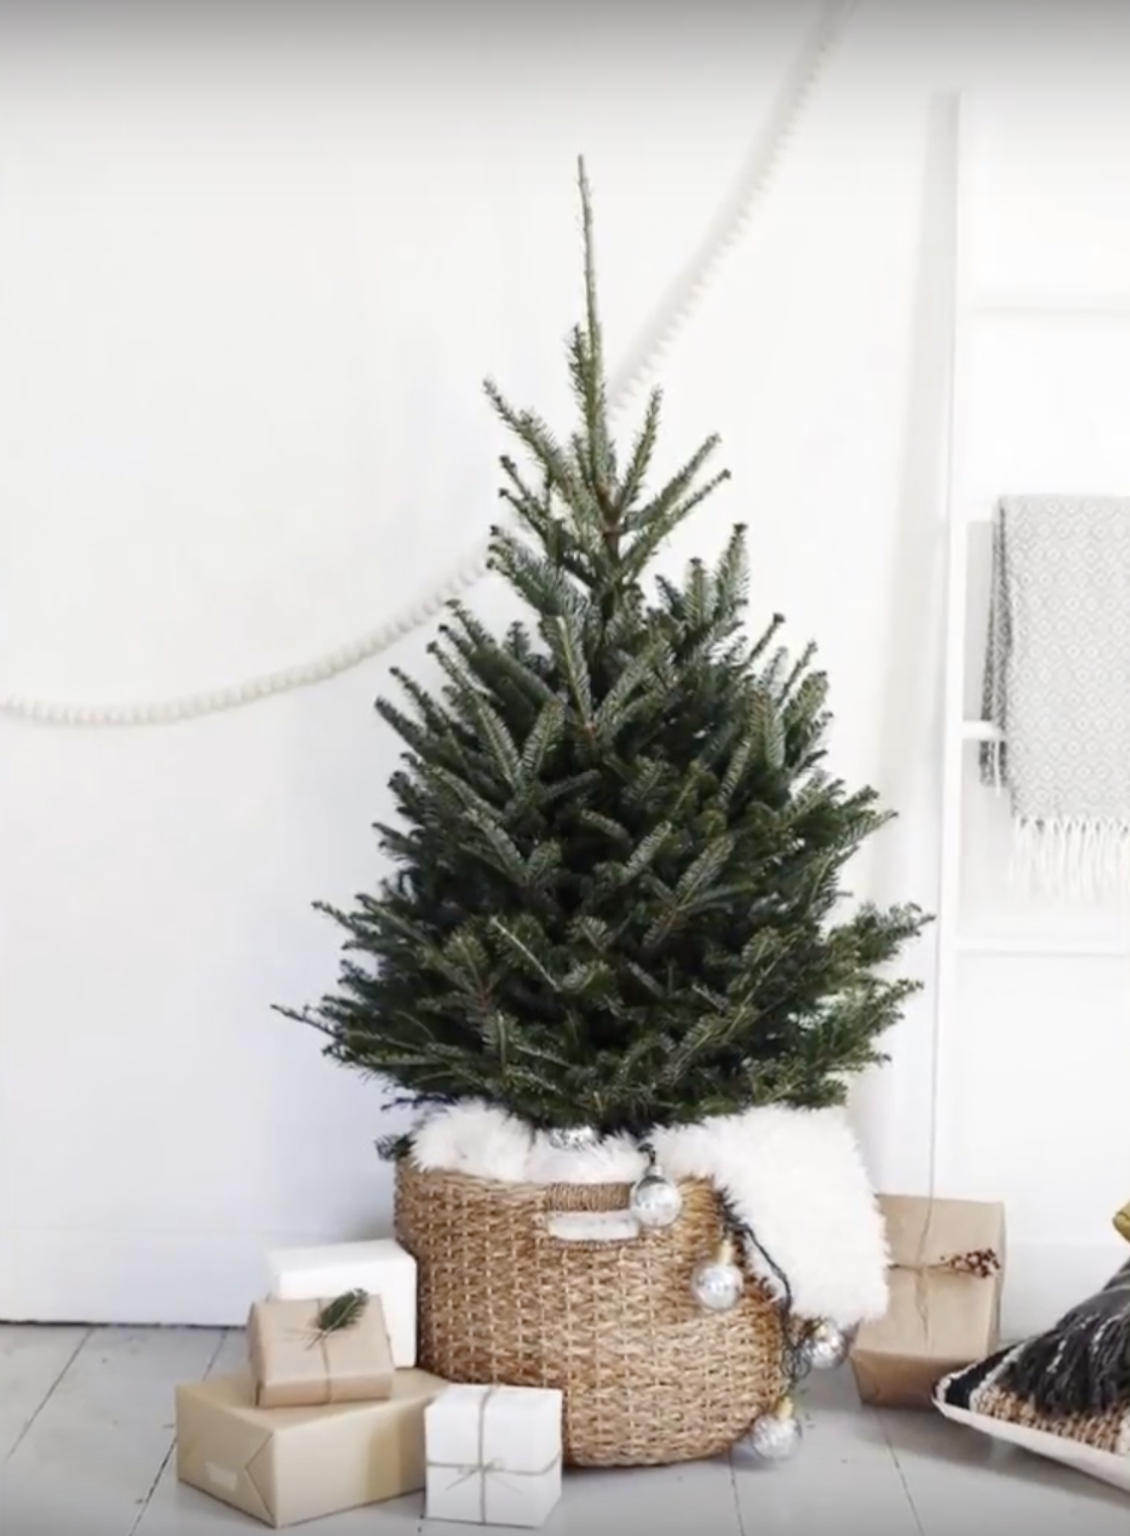 Decorating For Christmas In The Minimalist And Scandinavian Styles Live Your Style Scandinavian Christmas Decorations Minimalist Christmas Tree Simple Christmas Decor